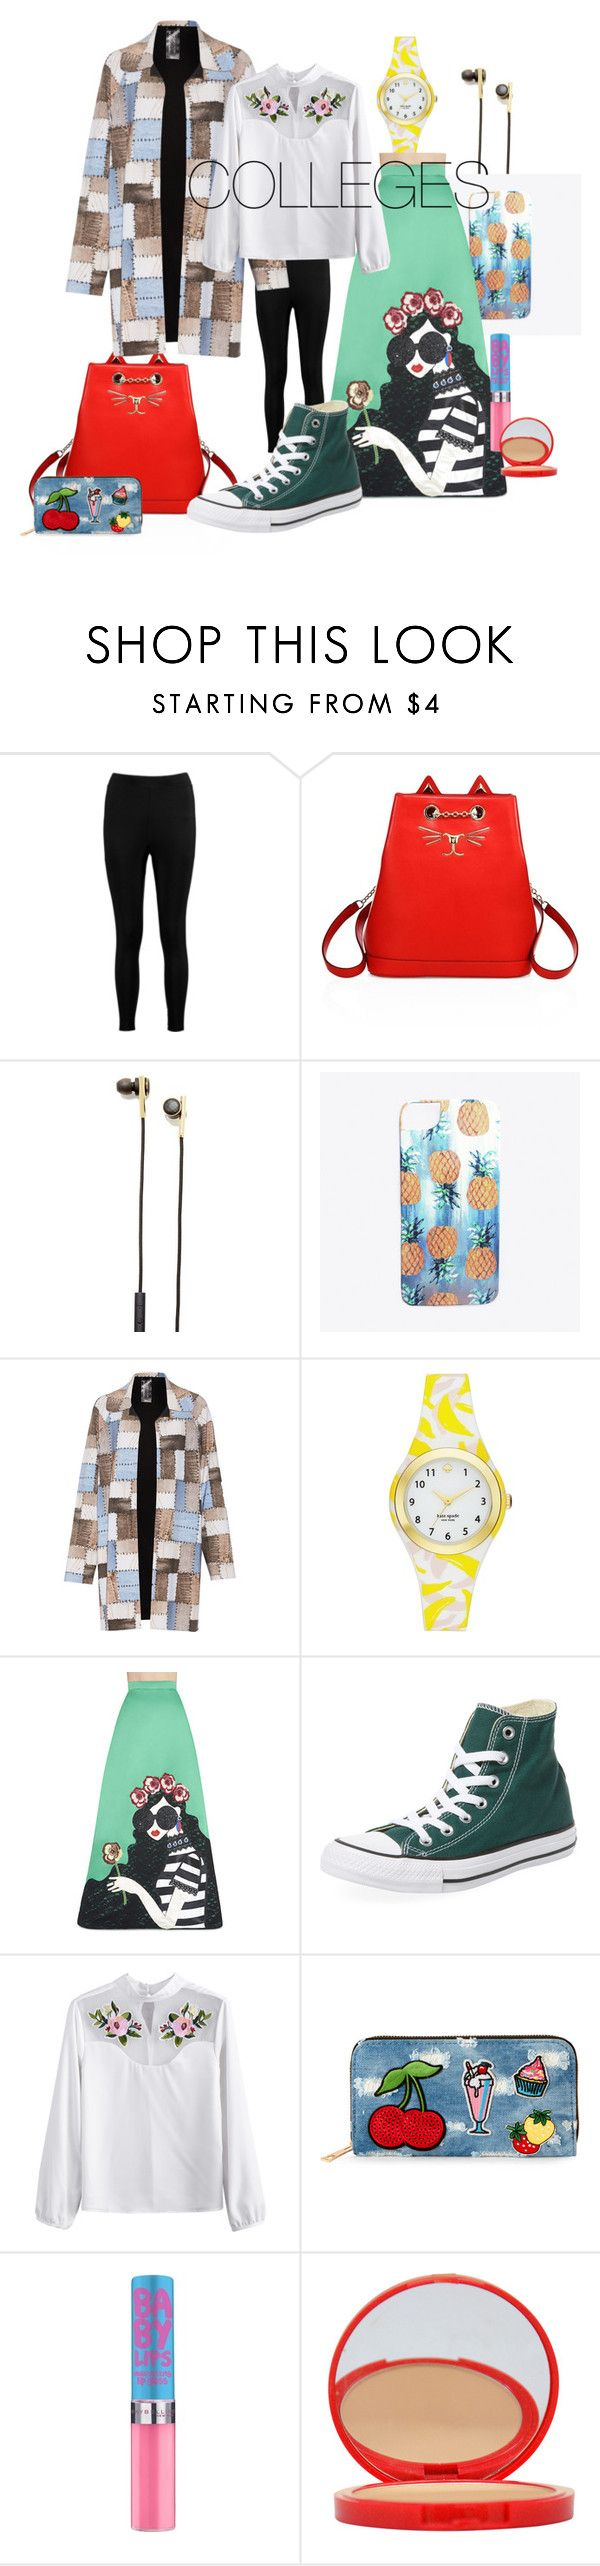 """College's Outfit"" by tsabitaa on Polyvore featuring Boohoo, Charlotte Olympia, Caeden, Nikki Strange, Norma Kamali, Kate Spade, Alice + Olivia, Converse, Viola and Bourjois"